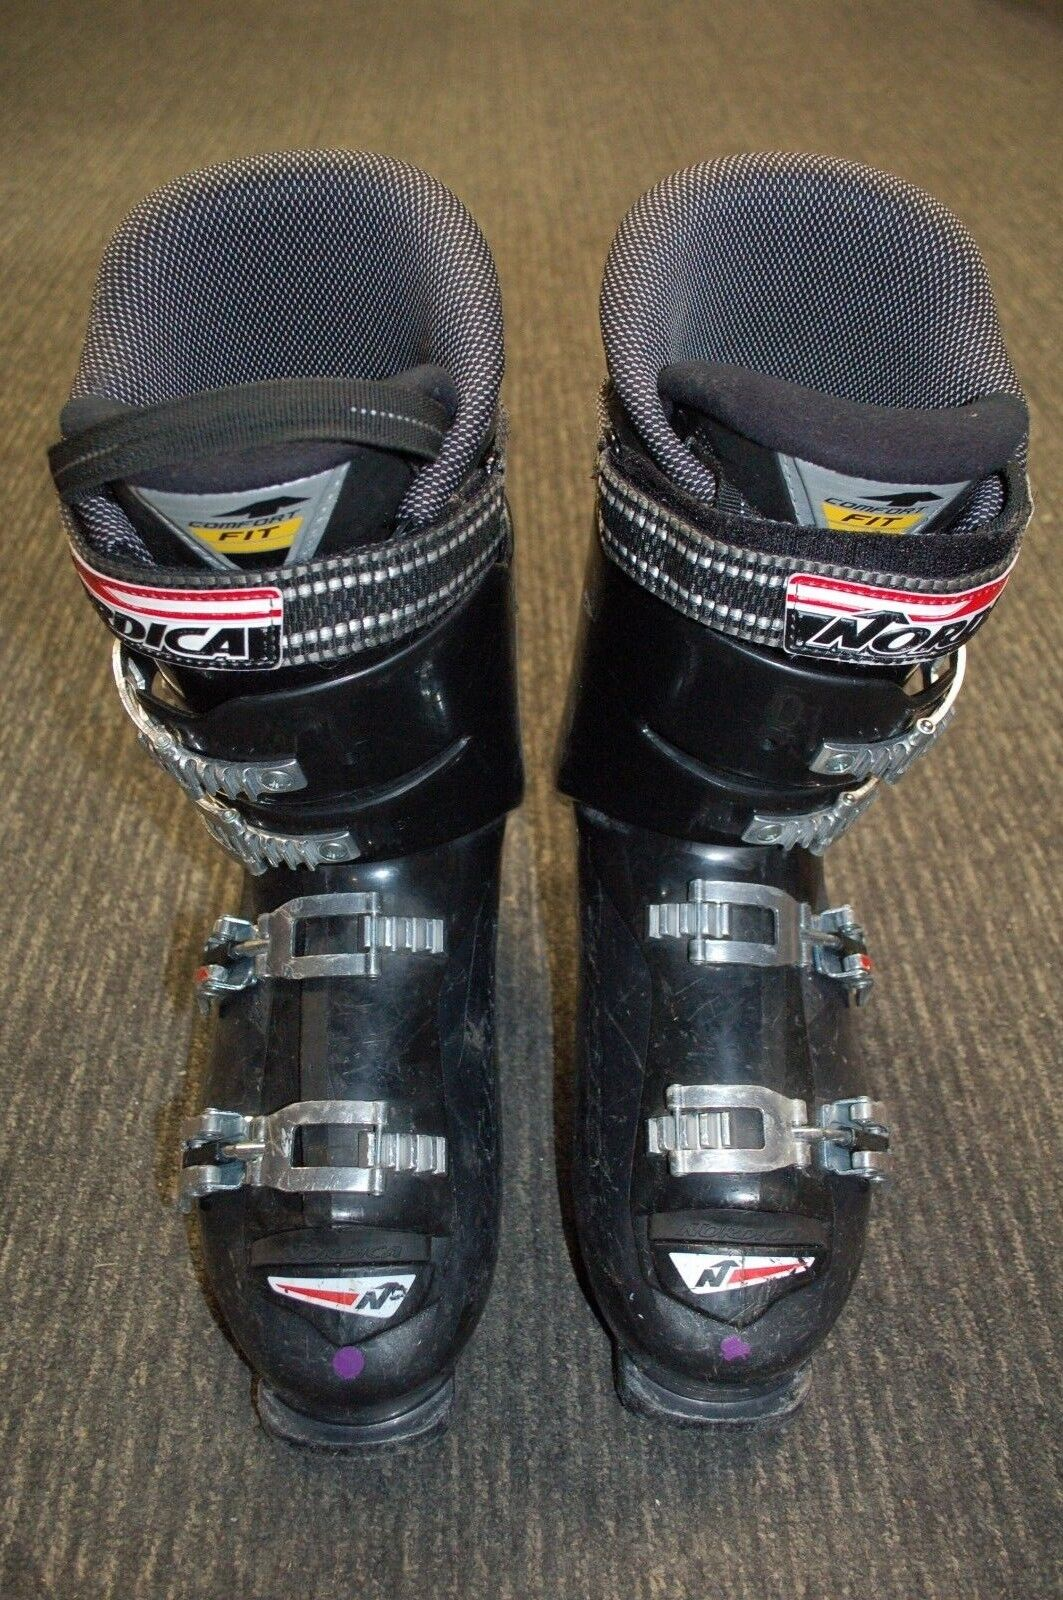 Nordica Cruise 60 280 Ski Boots (; ) + FREE BRAND NEW  Boots Bag